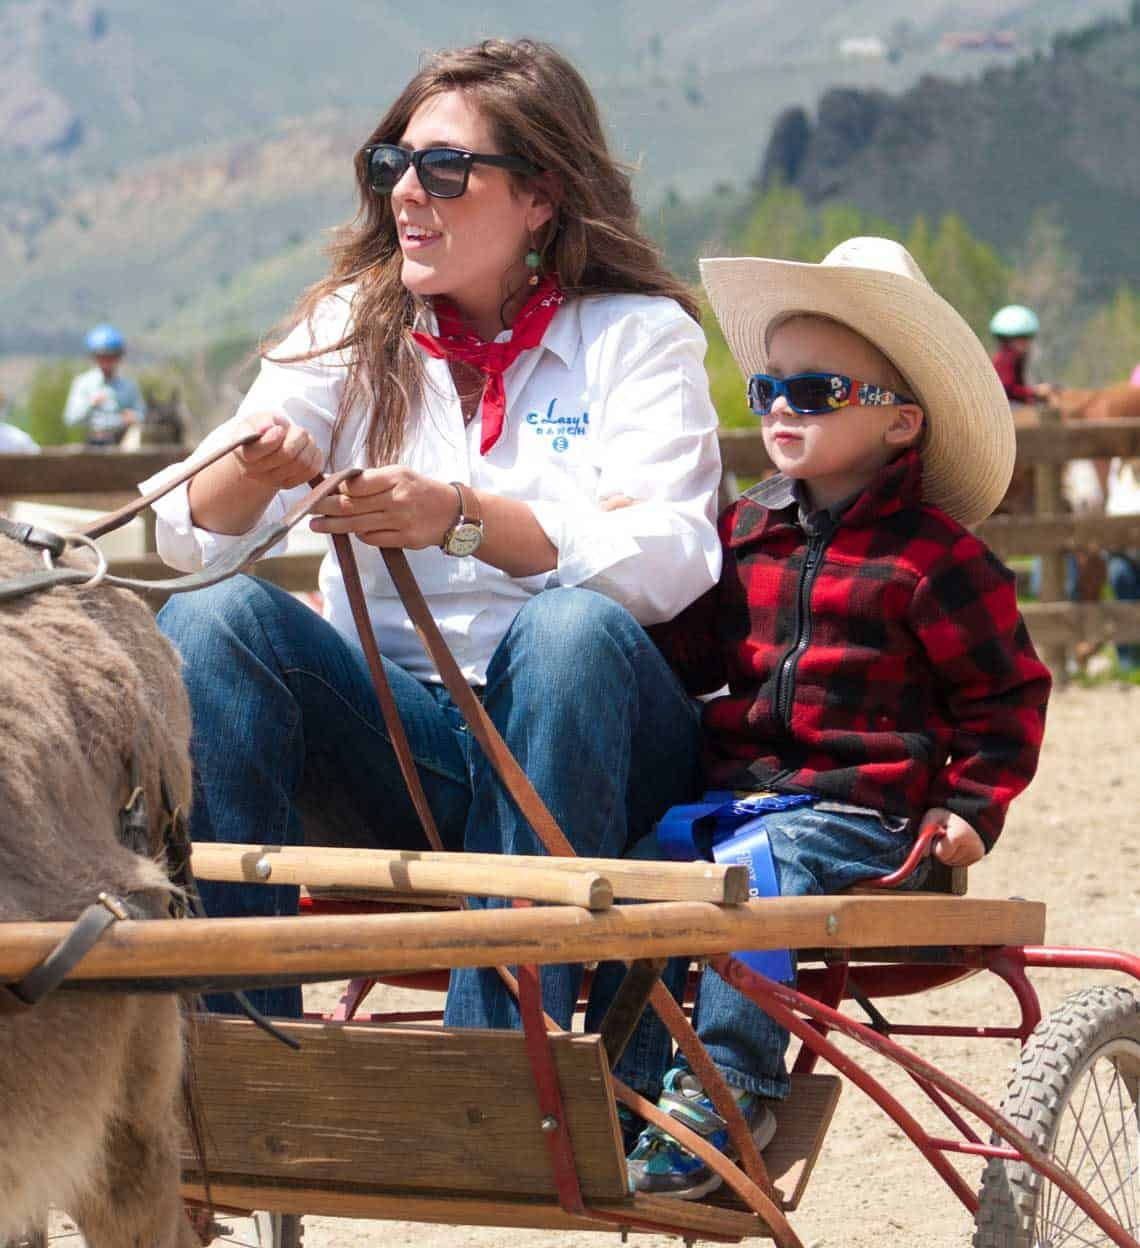 A wee guest enjoys a donkey cart ride during his family's spring vacation at C Lazy U